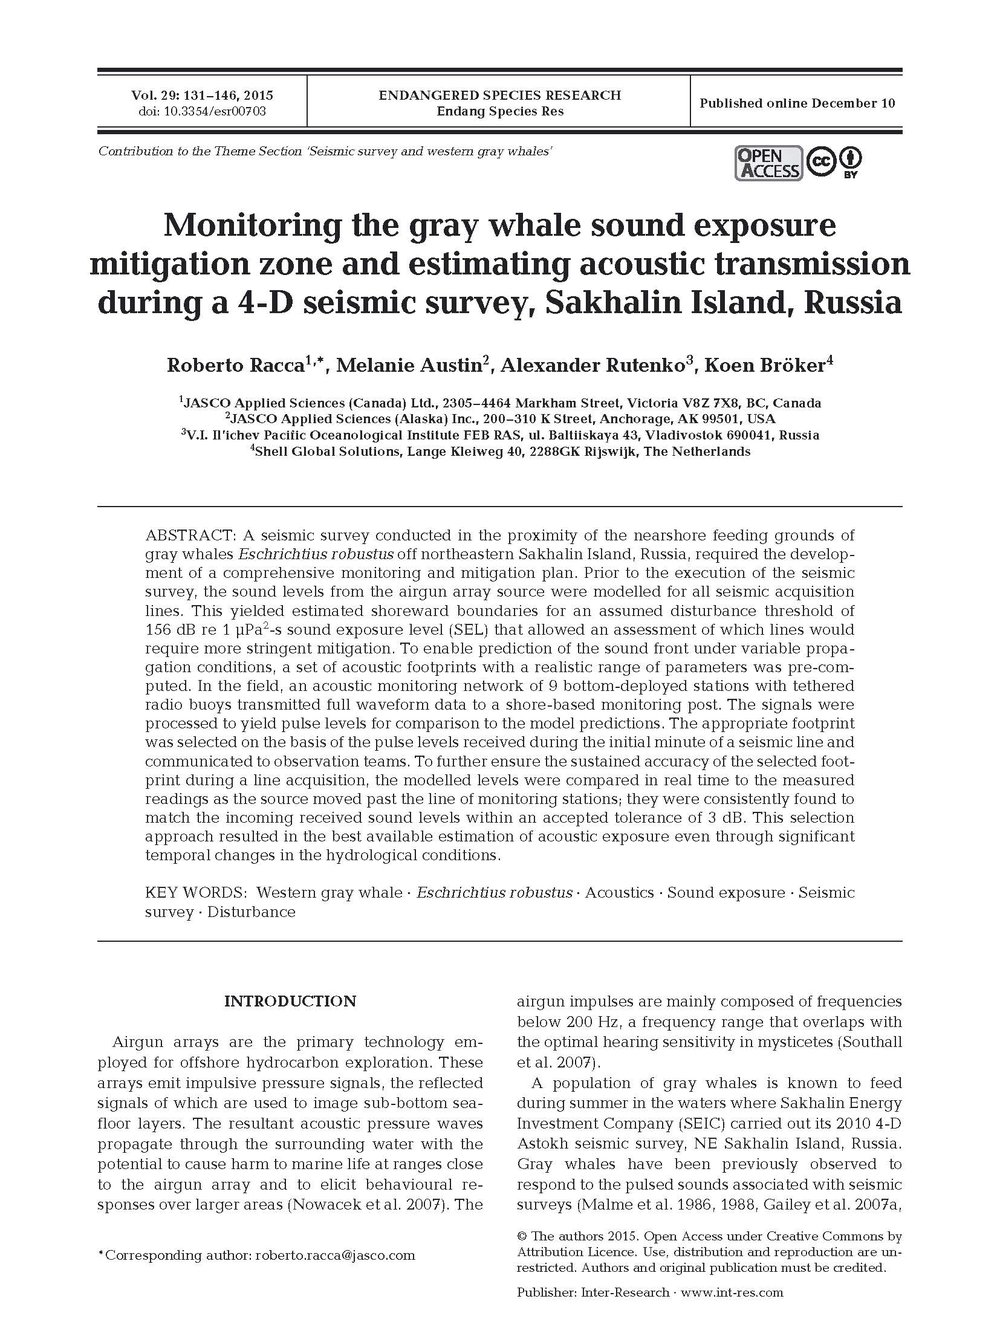 - Racca, R., M. Austin, A. Rutenko, and K. Bröker. 2015. Monitoring the gray whale sound exposure mitigation zone and estimating acoustic transmission during a 4-D seismic survey, Sakhalin Island, Russia. Endang. Species Res.  29: 131-146.http://www.int-res.com/articles/esr2016/29/n029p131.pdf